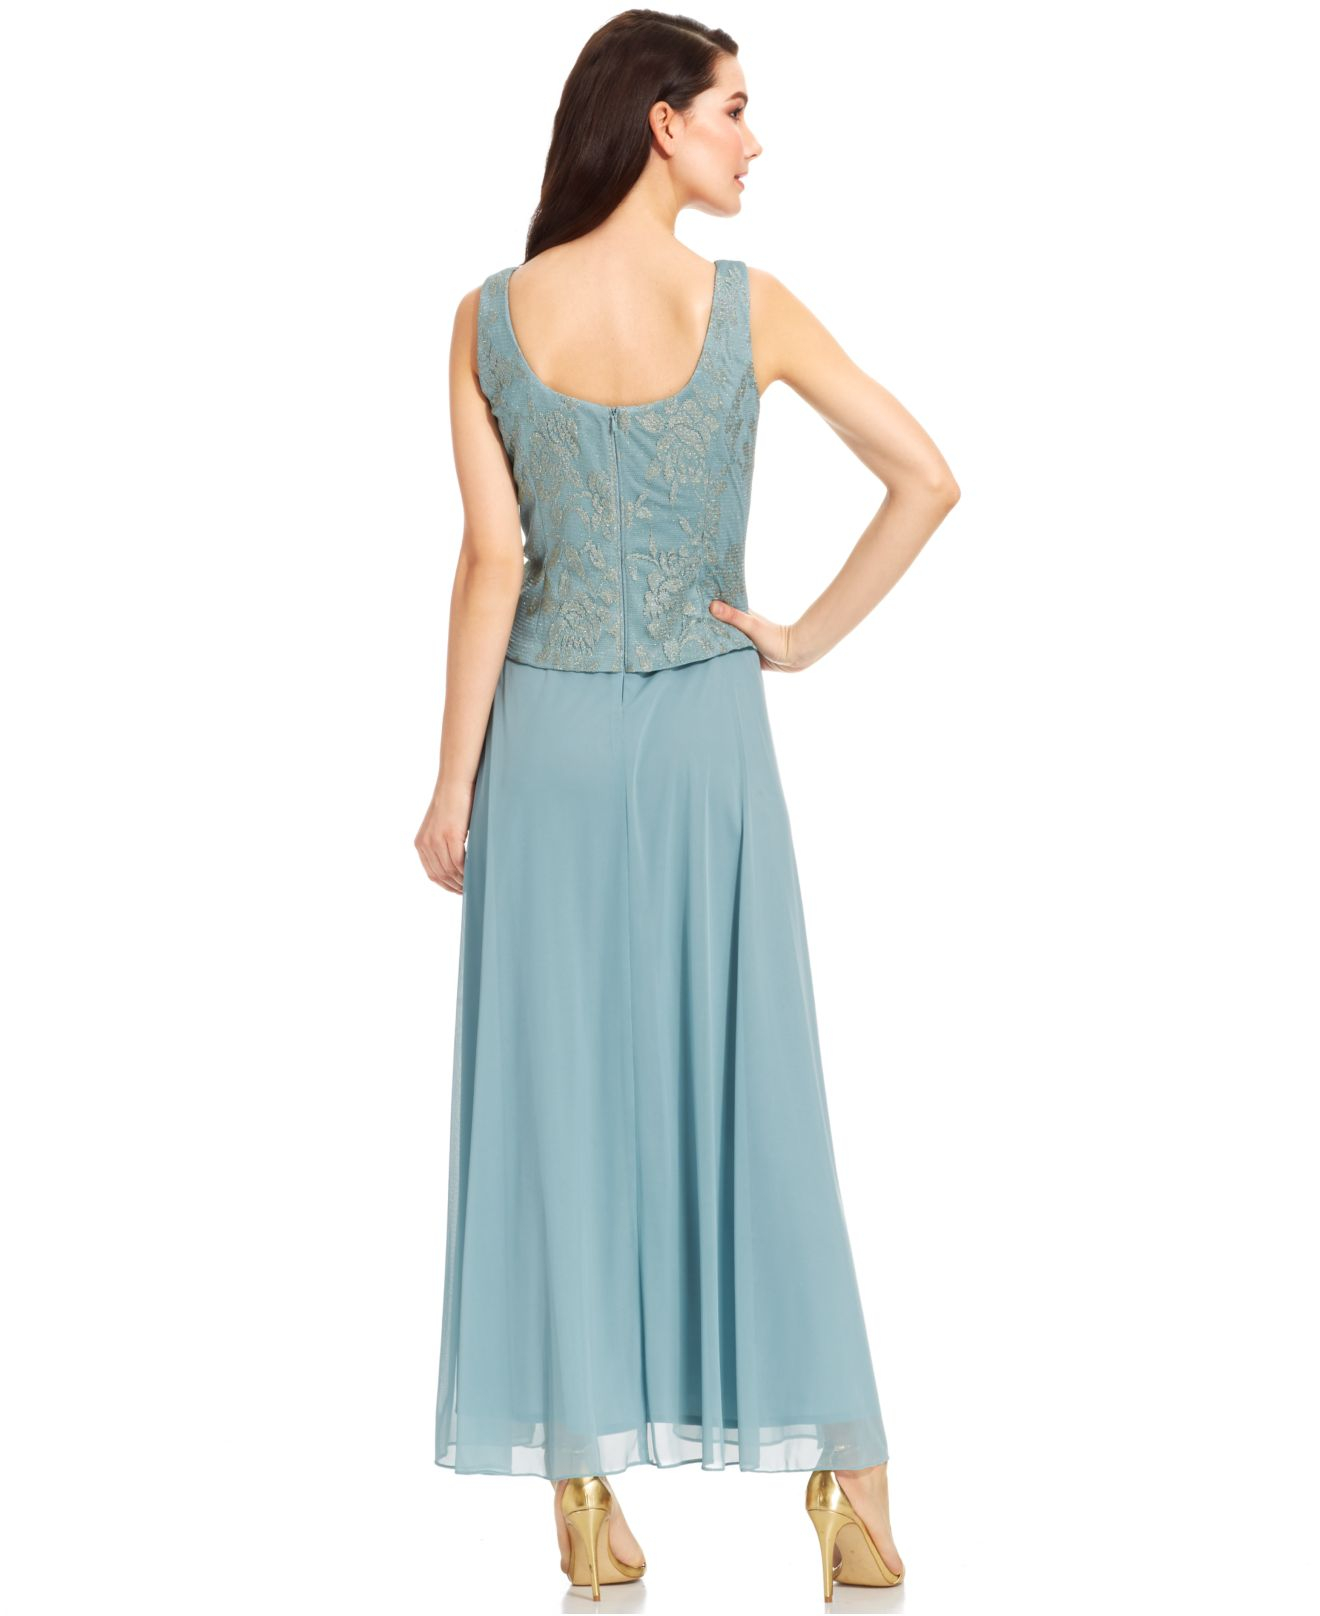 c7dcf307c0d6a Lyst - Patra Sleeveless Metallic Lace Gown And Jacket in Blue